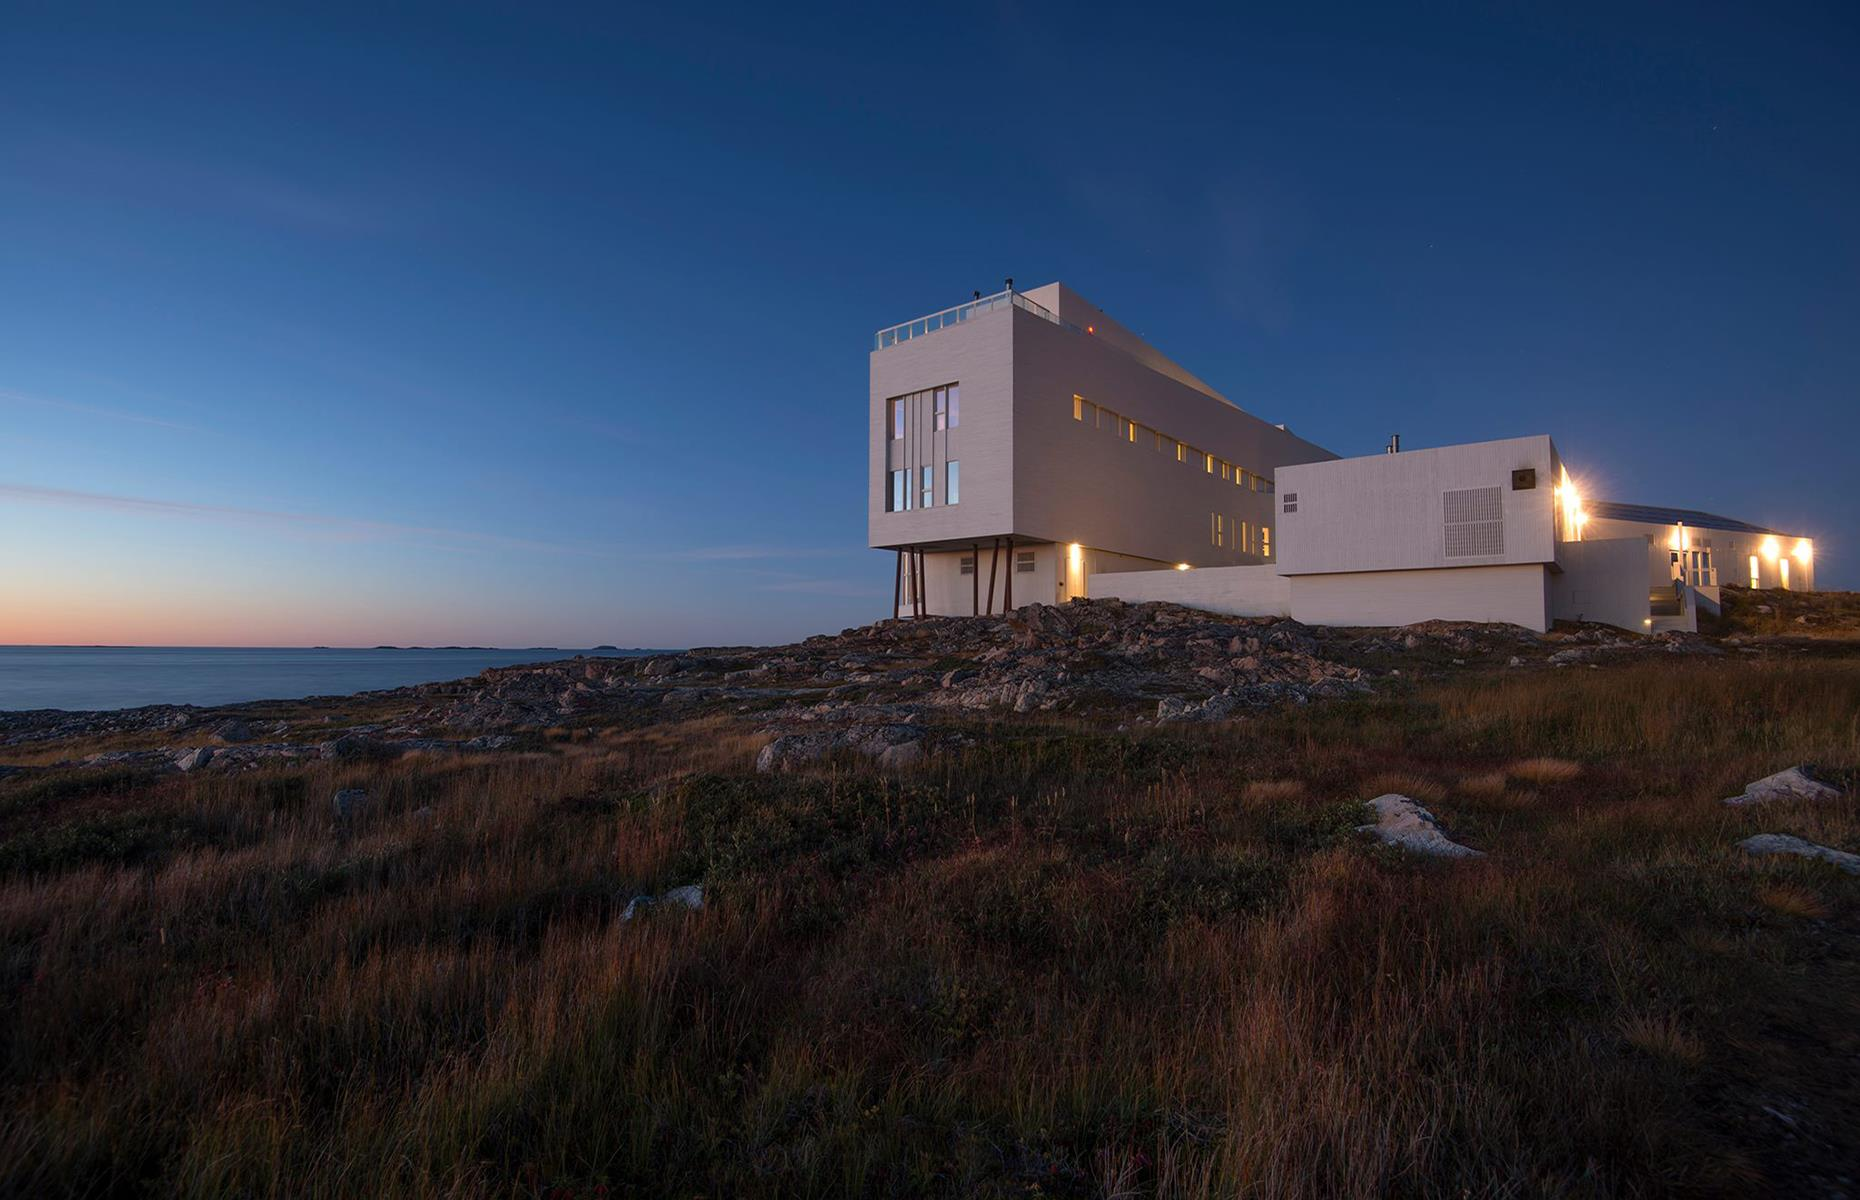 Slide 2 of 32: A minimalist masterpiece, Fogo Island Inn is tucked away from the worldin a traditional fishing village on the northern coast of Newfoundland's Fogo Island. The 29suites all come with access to a wood-fired sauna and rooftop hot tubs (both currently closed), plus a cinema, contemporary art gallery and a library specializing in Newfoundland's history. There arestrict health and safety proceduresin place.